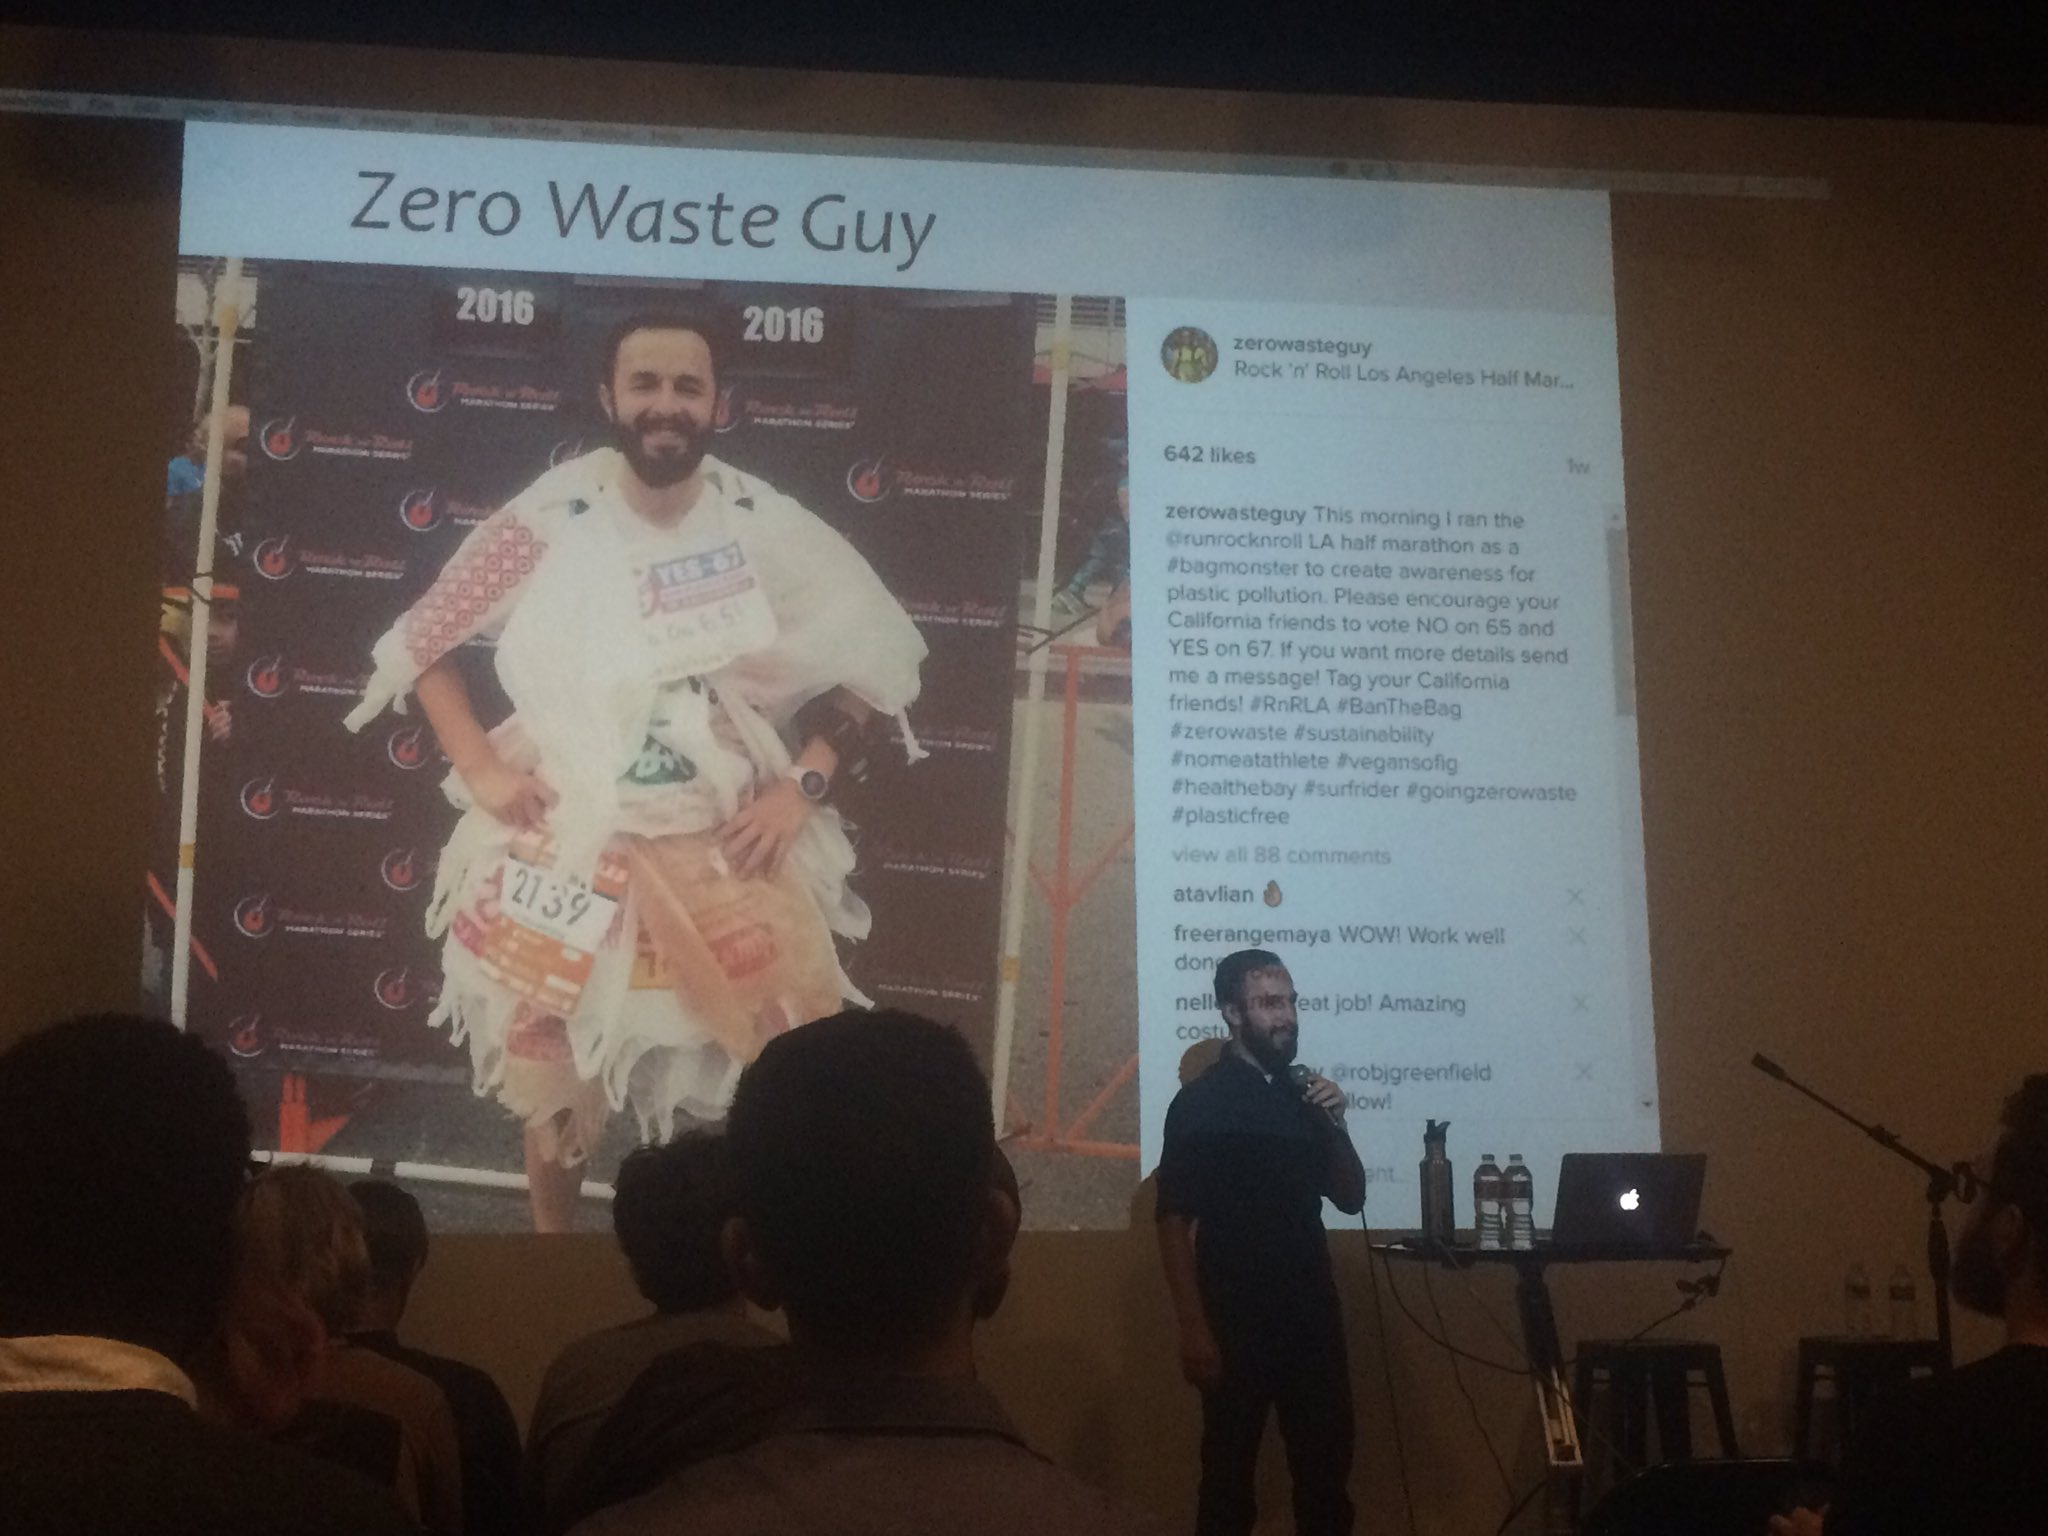 From corporate to @zerowasteguy1 (yay plastic bag ban) #wud16la https://t.co/Vhd9eNfLtk